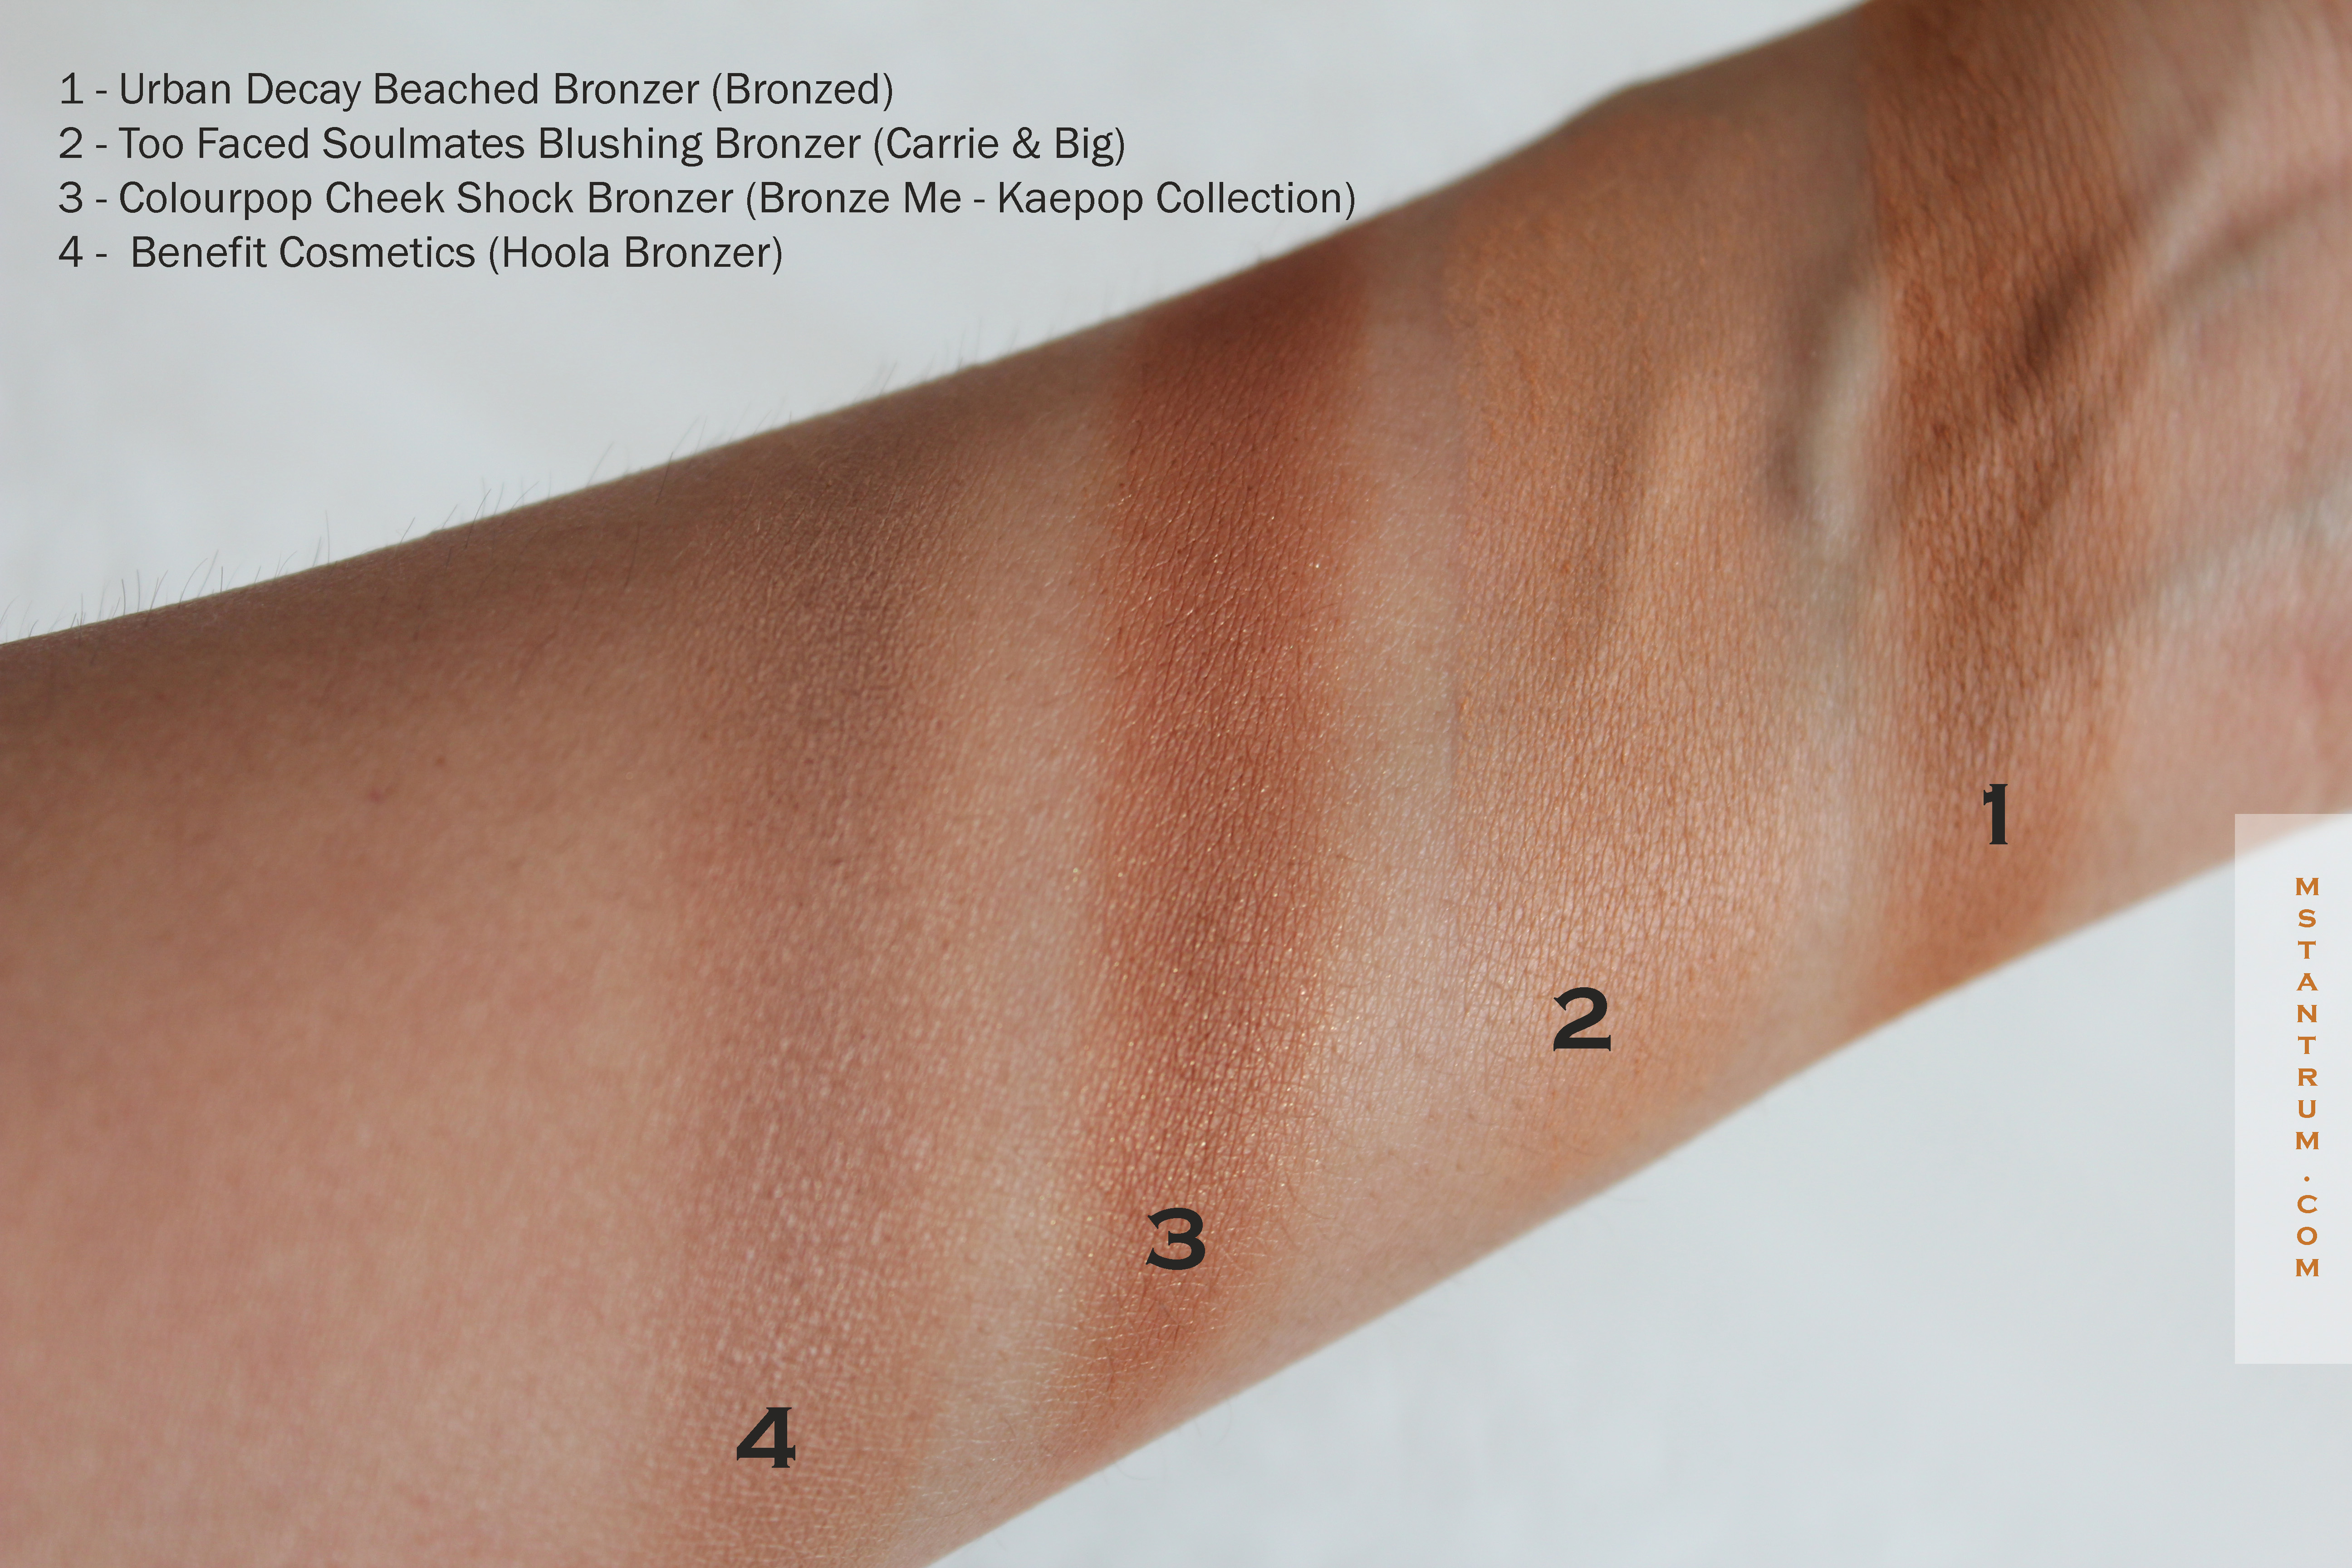 Bronzers for medium skintones